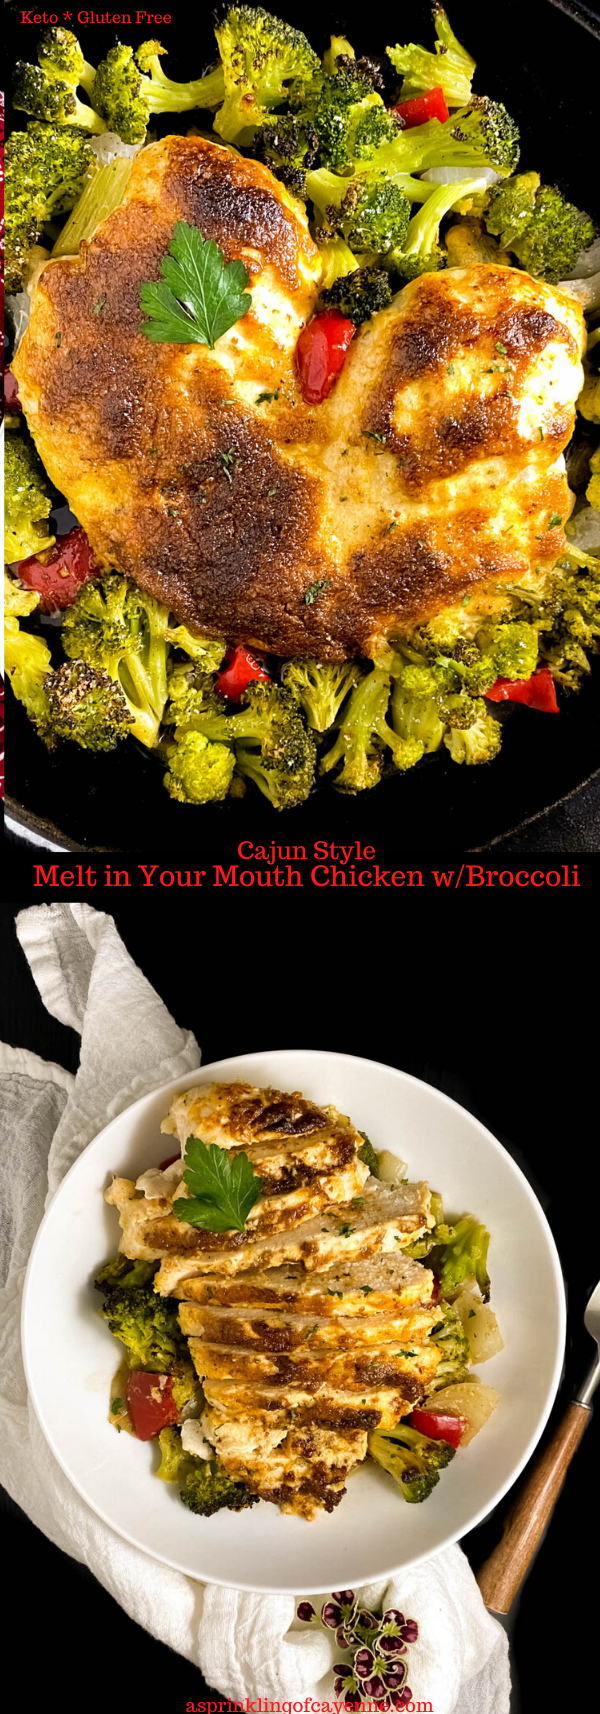 Keto Gluten Free Cajun Style Melt in Your Mouth Chicken with Broccoli Long Pin Long Pin